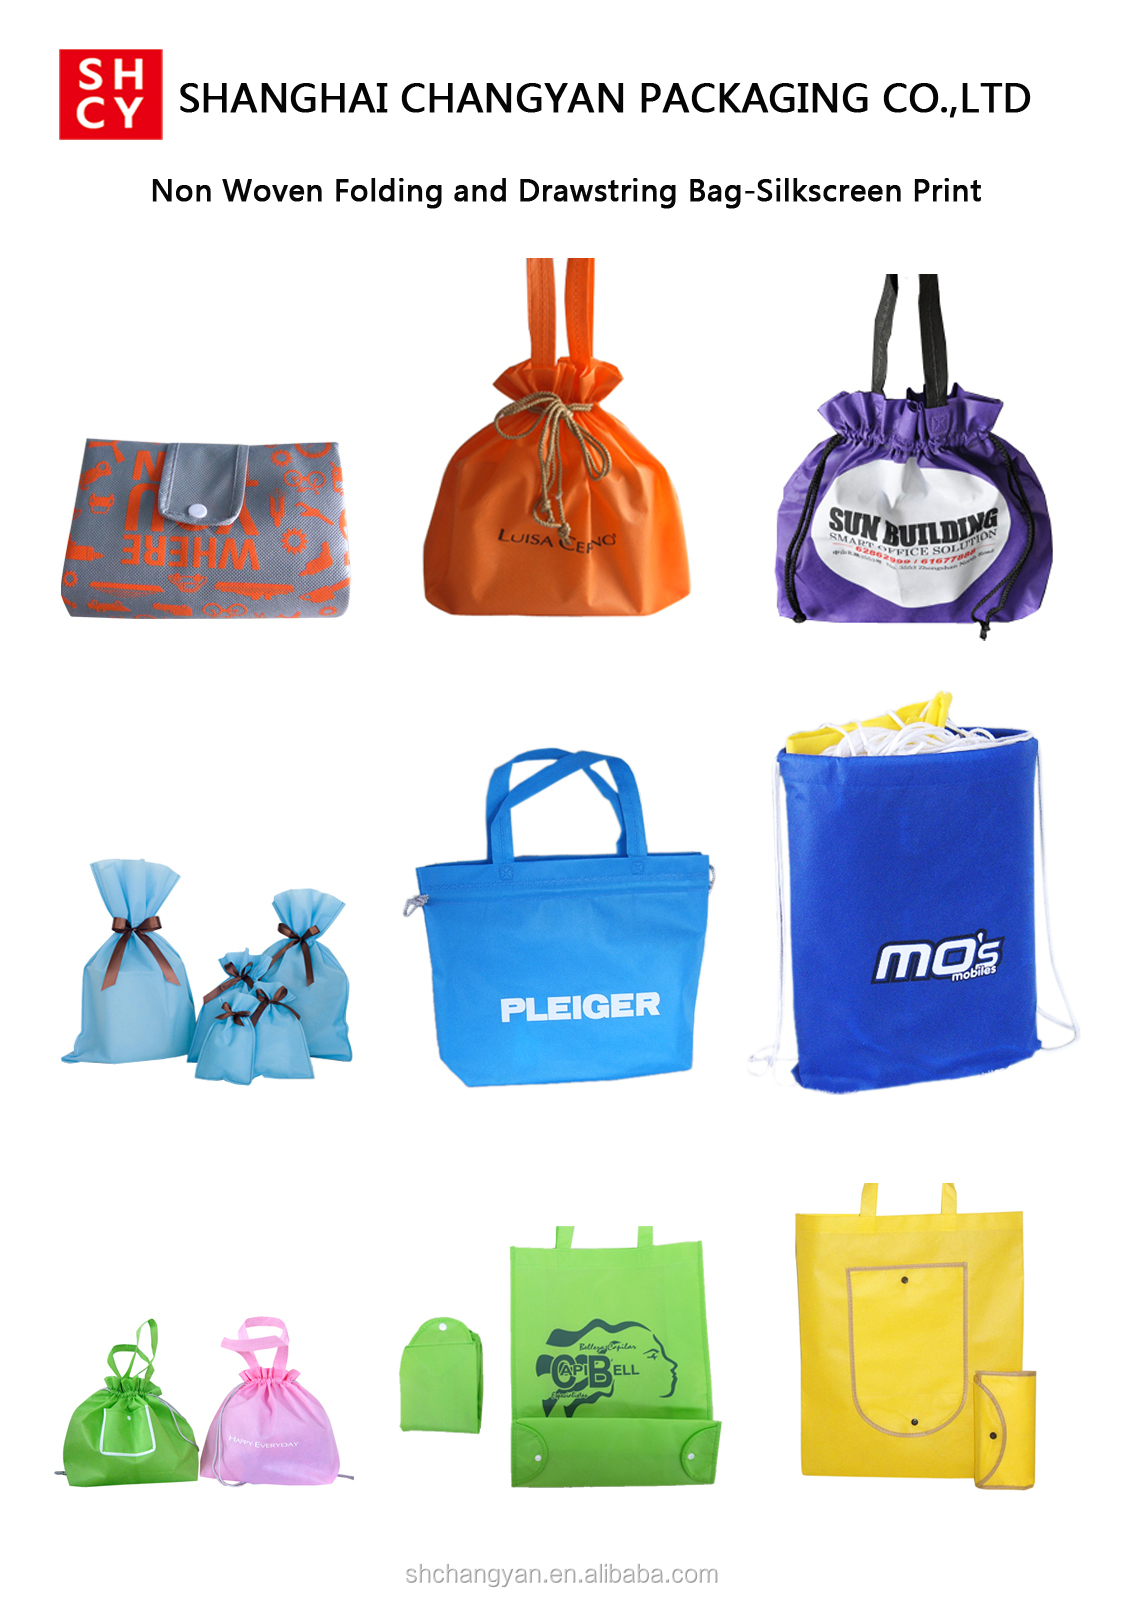 non woven folding and bag